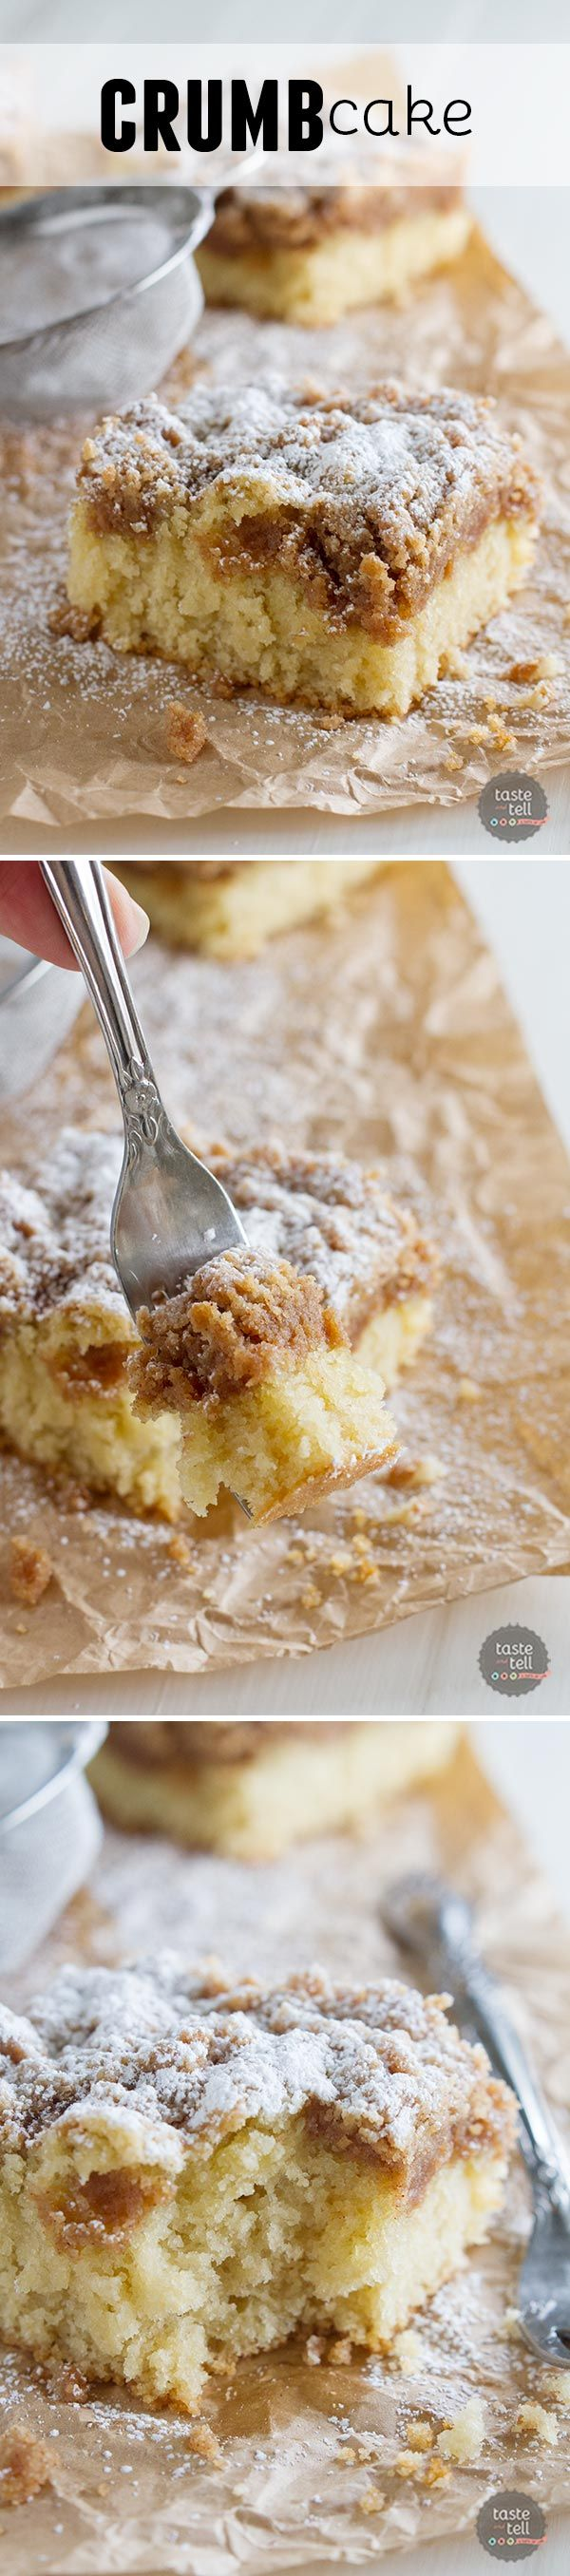 www.gardennearthegreen.com This Crumb Cake Recipe has a moist cake that is topped with a thick layer of crumb topping. This is the BEST crumb cake recipe!